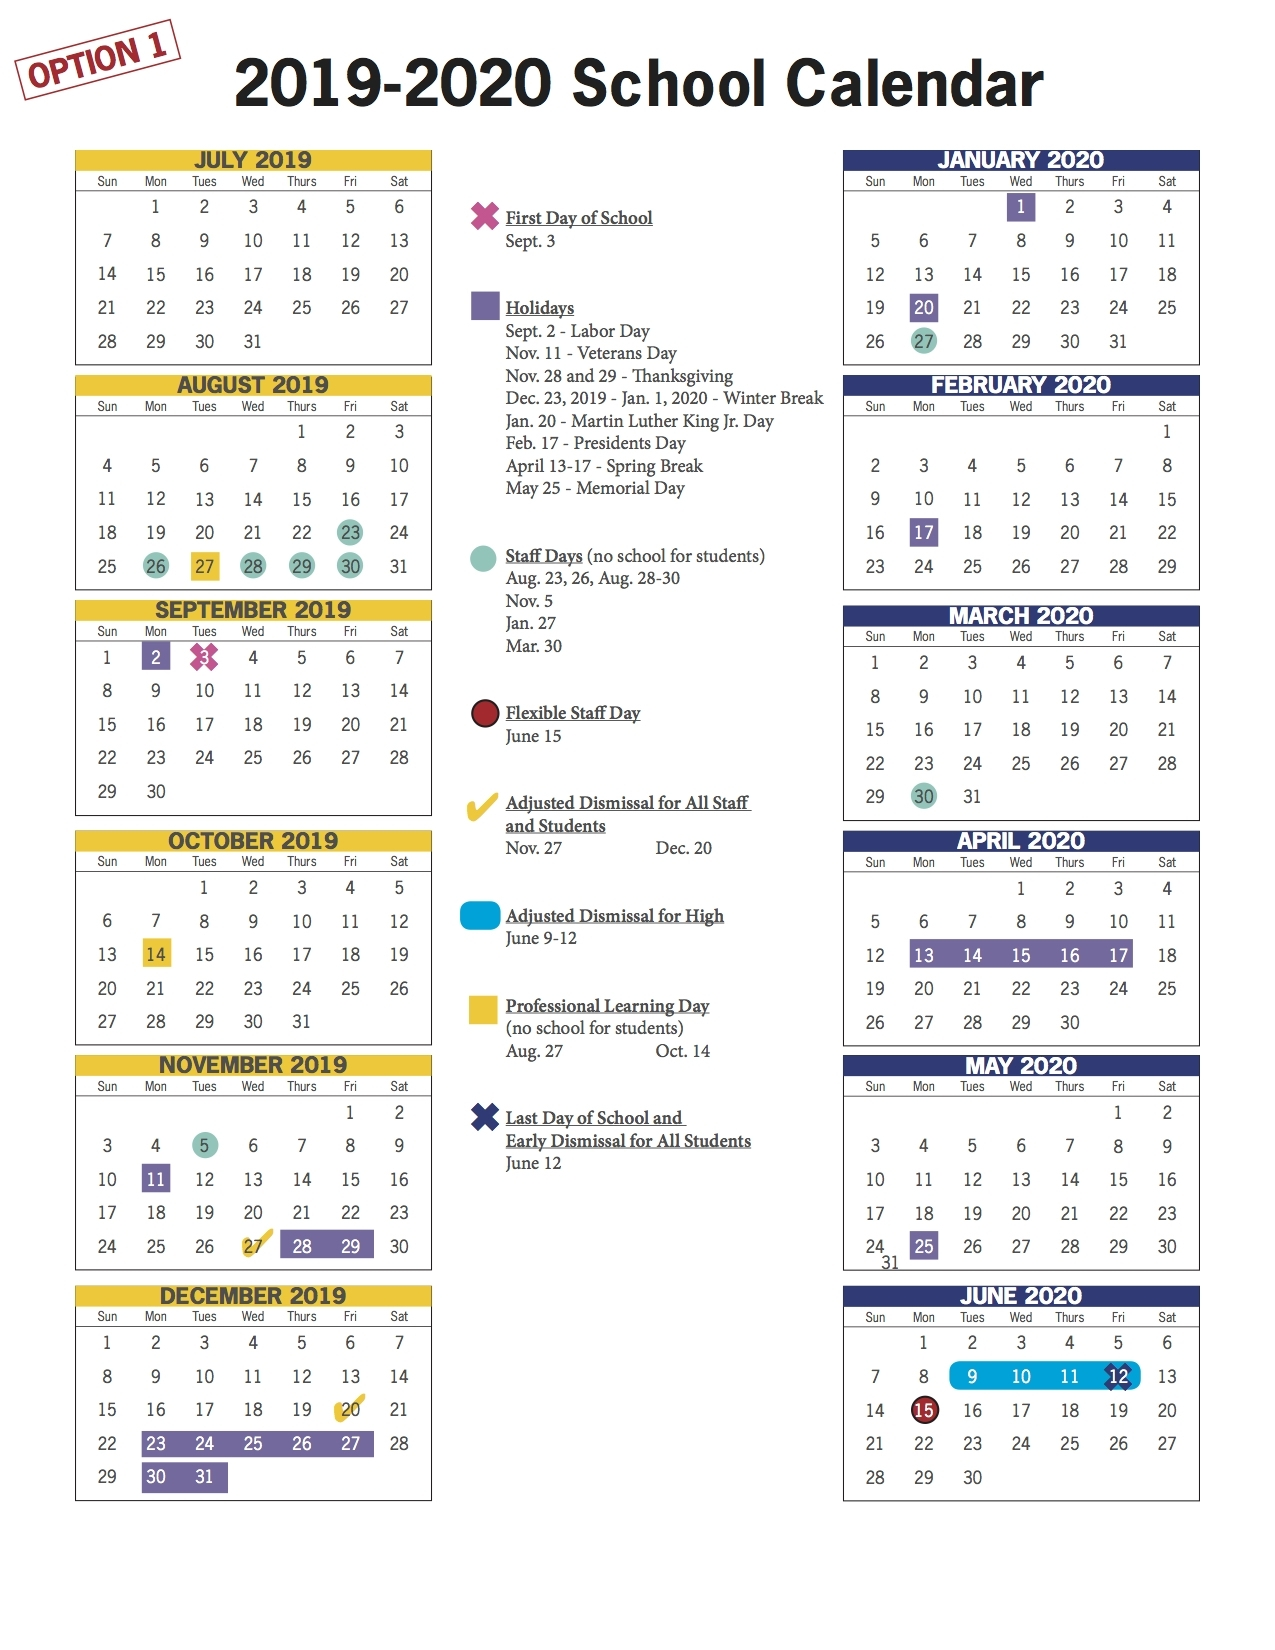 Vbcps E-Town Hall - 2018-2019 And 2019-2020 School Calendar Review within Embedded Calendar 2020